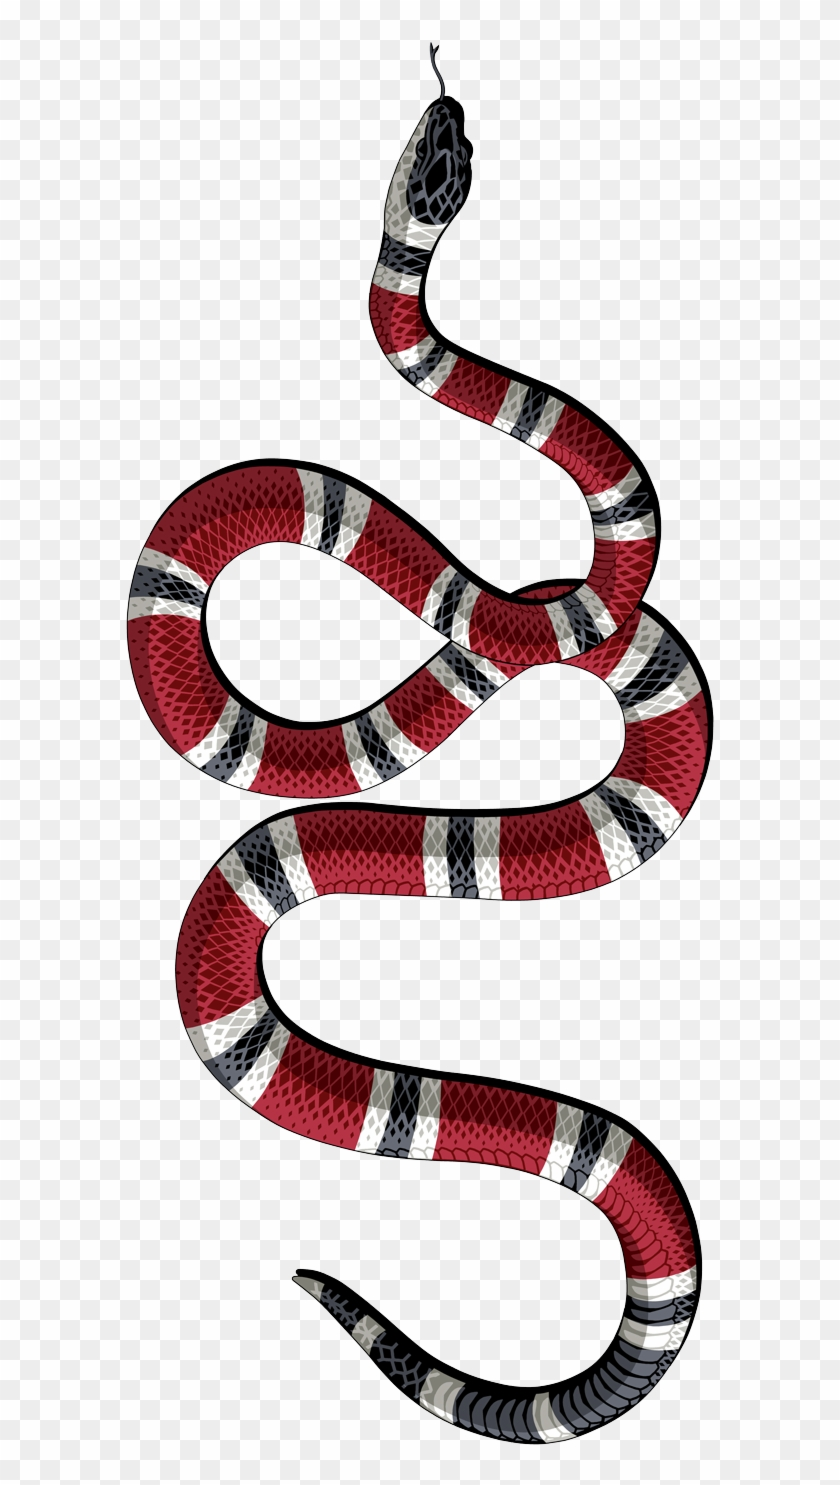 Decal Kingsnakes Gucci Sticker Serpent Png Free Photo - Gucci